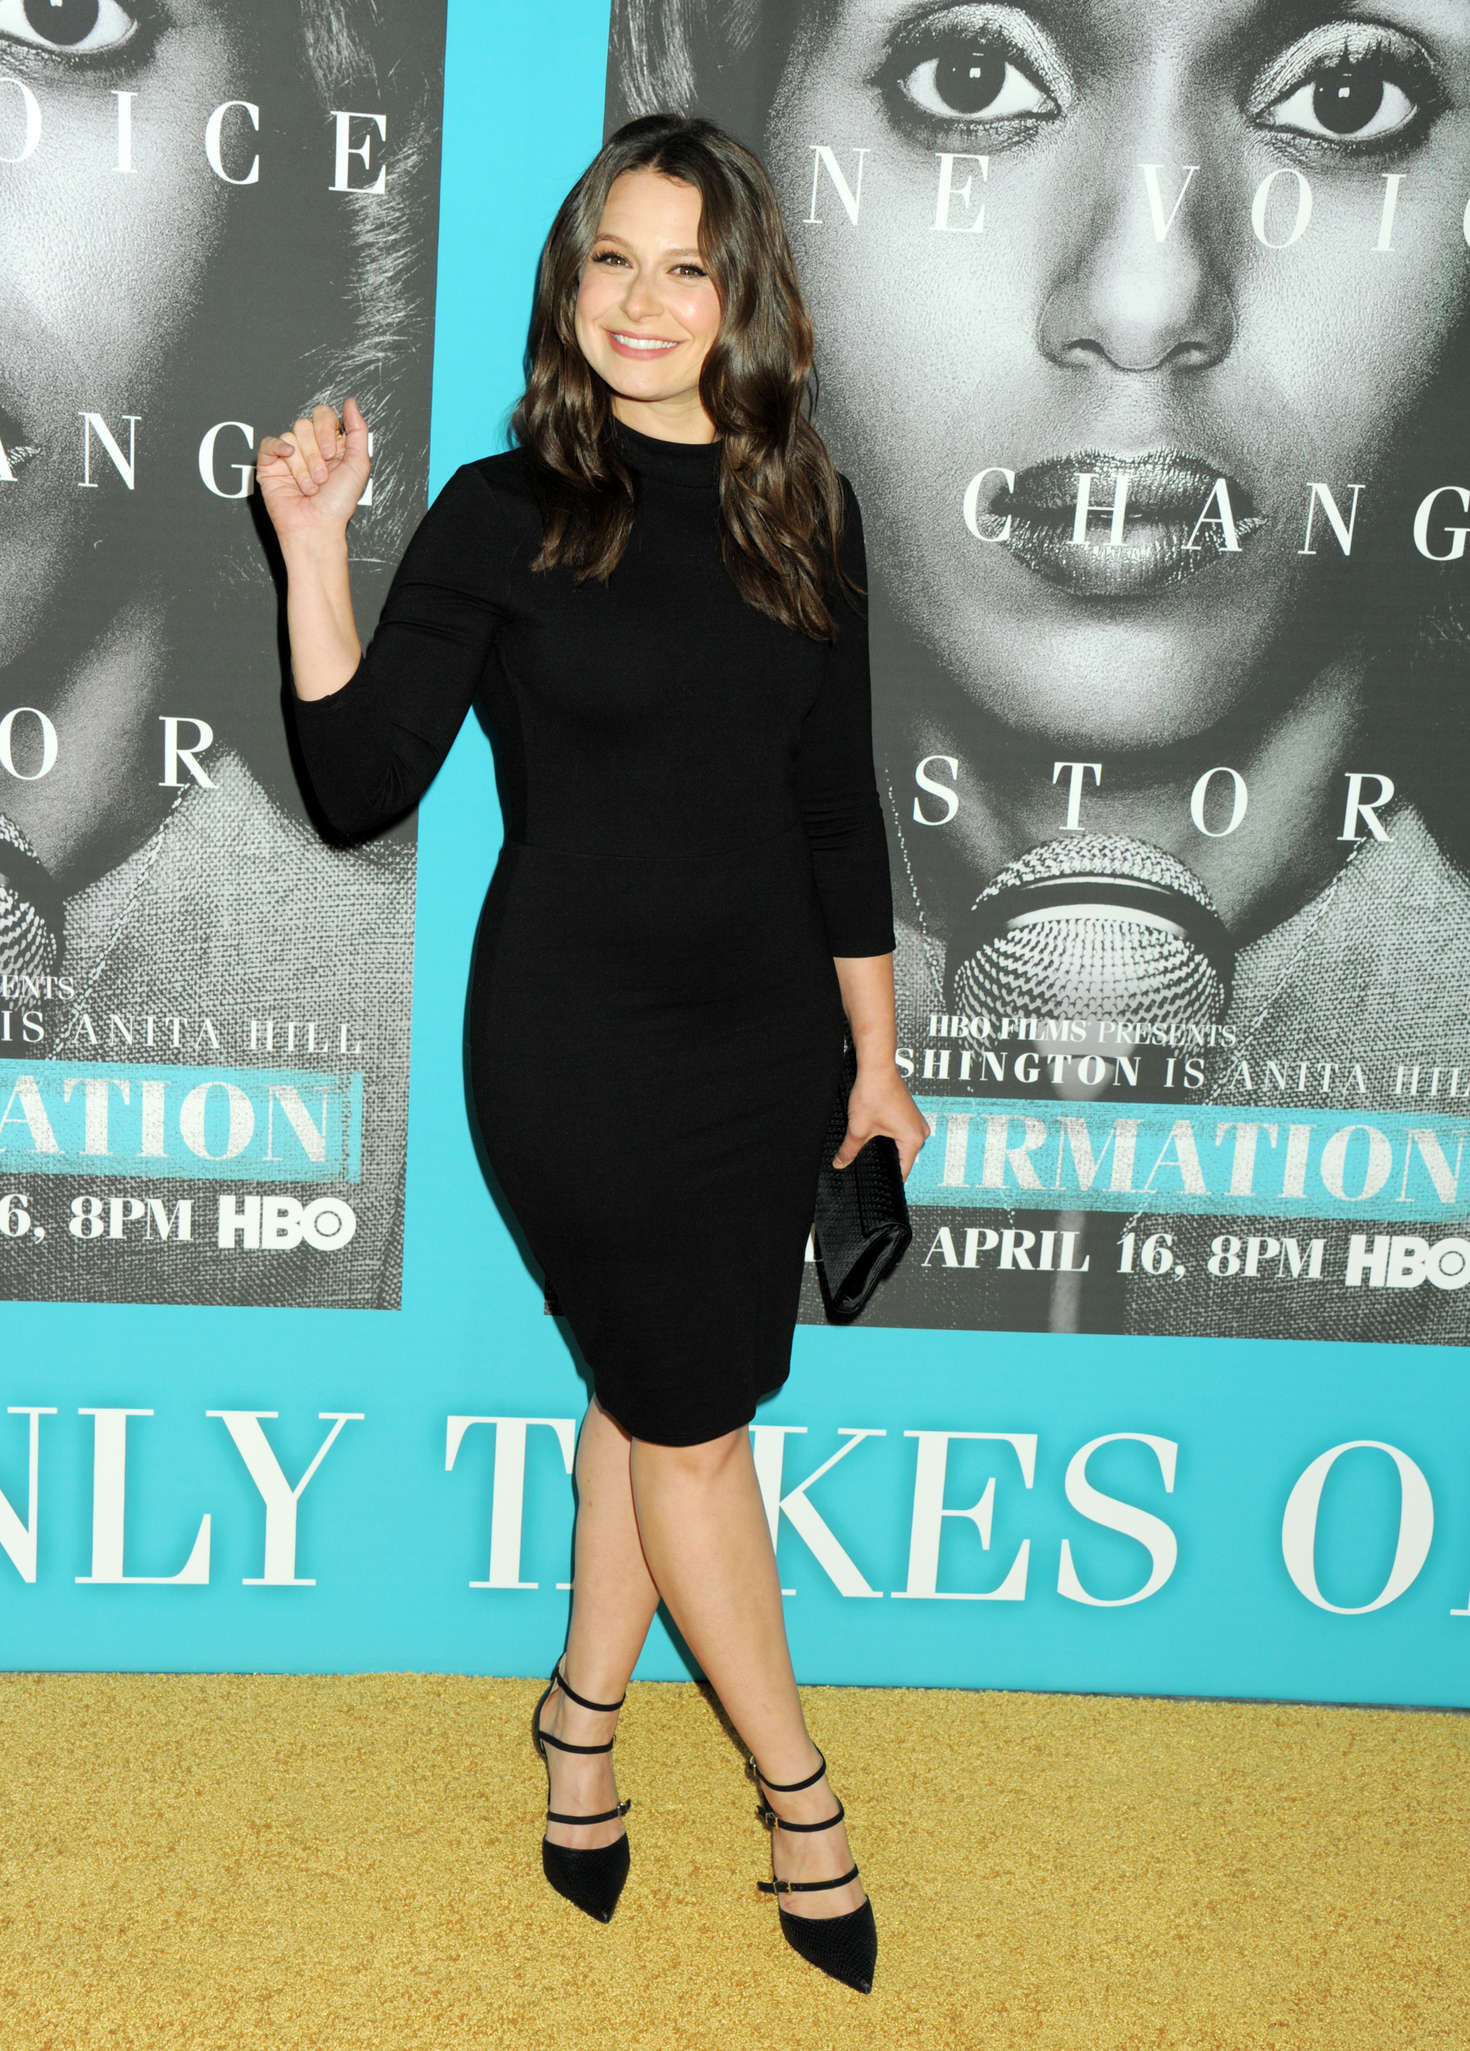 Katie Lowes Confirmation Premiere in Hollywood